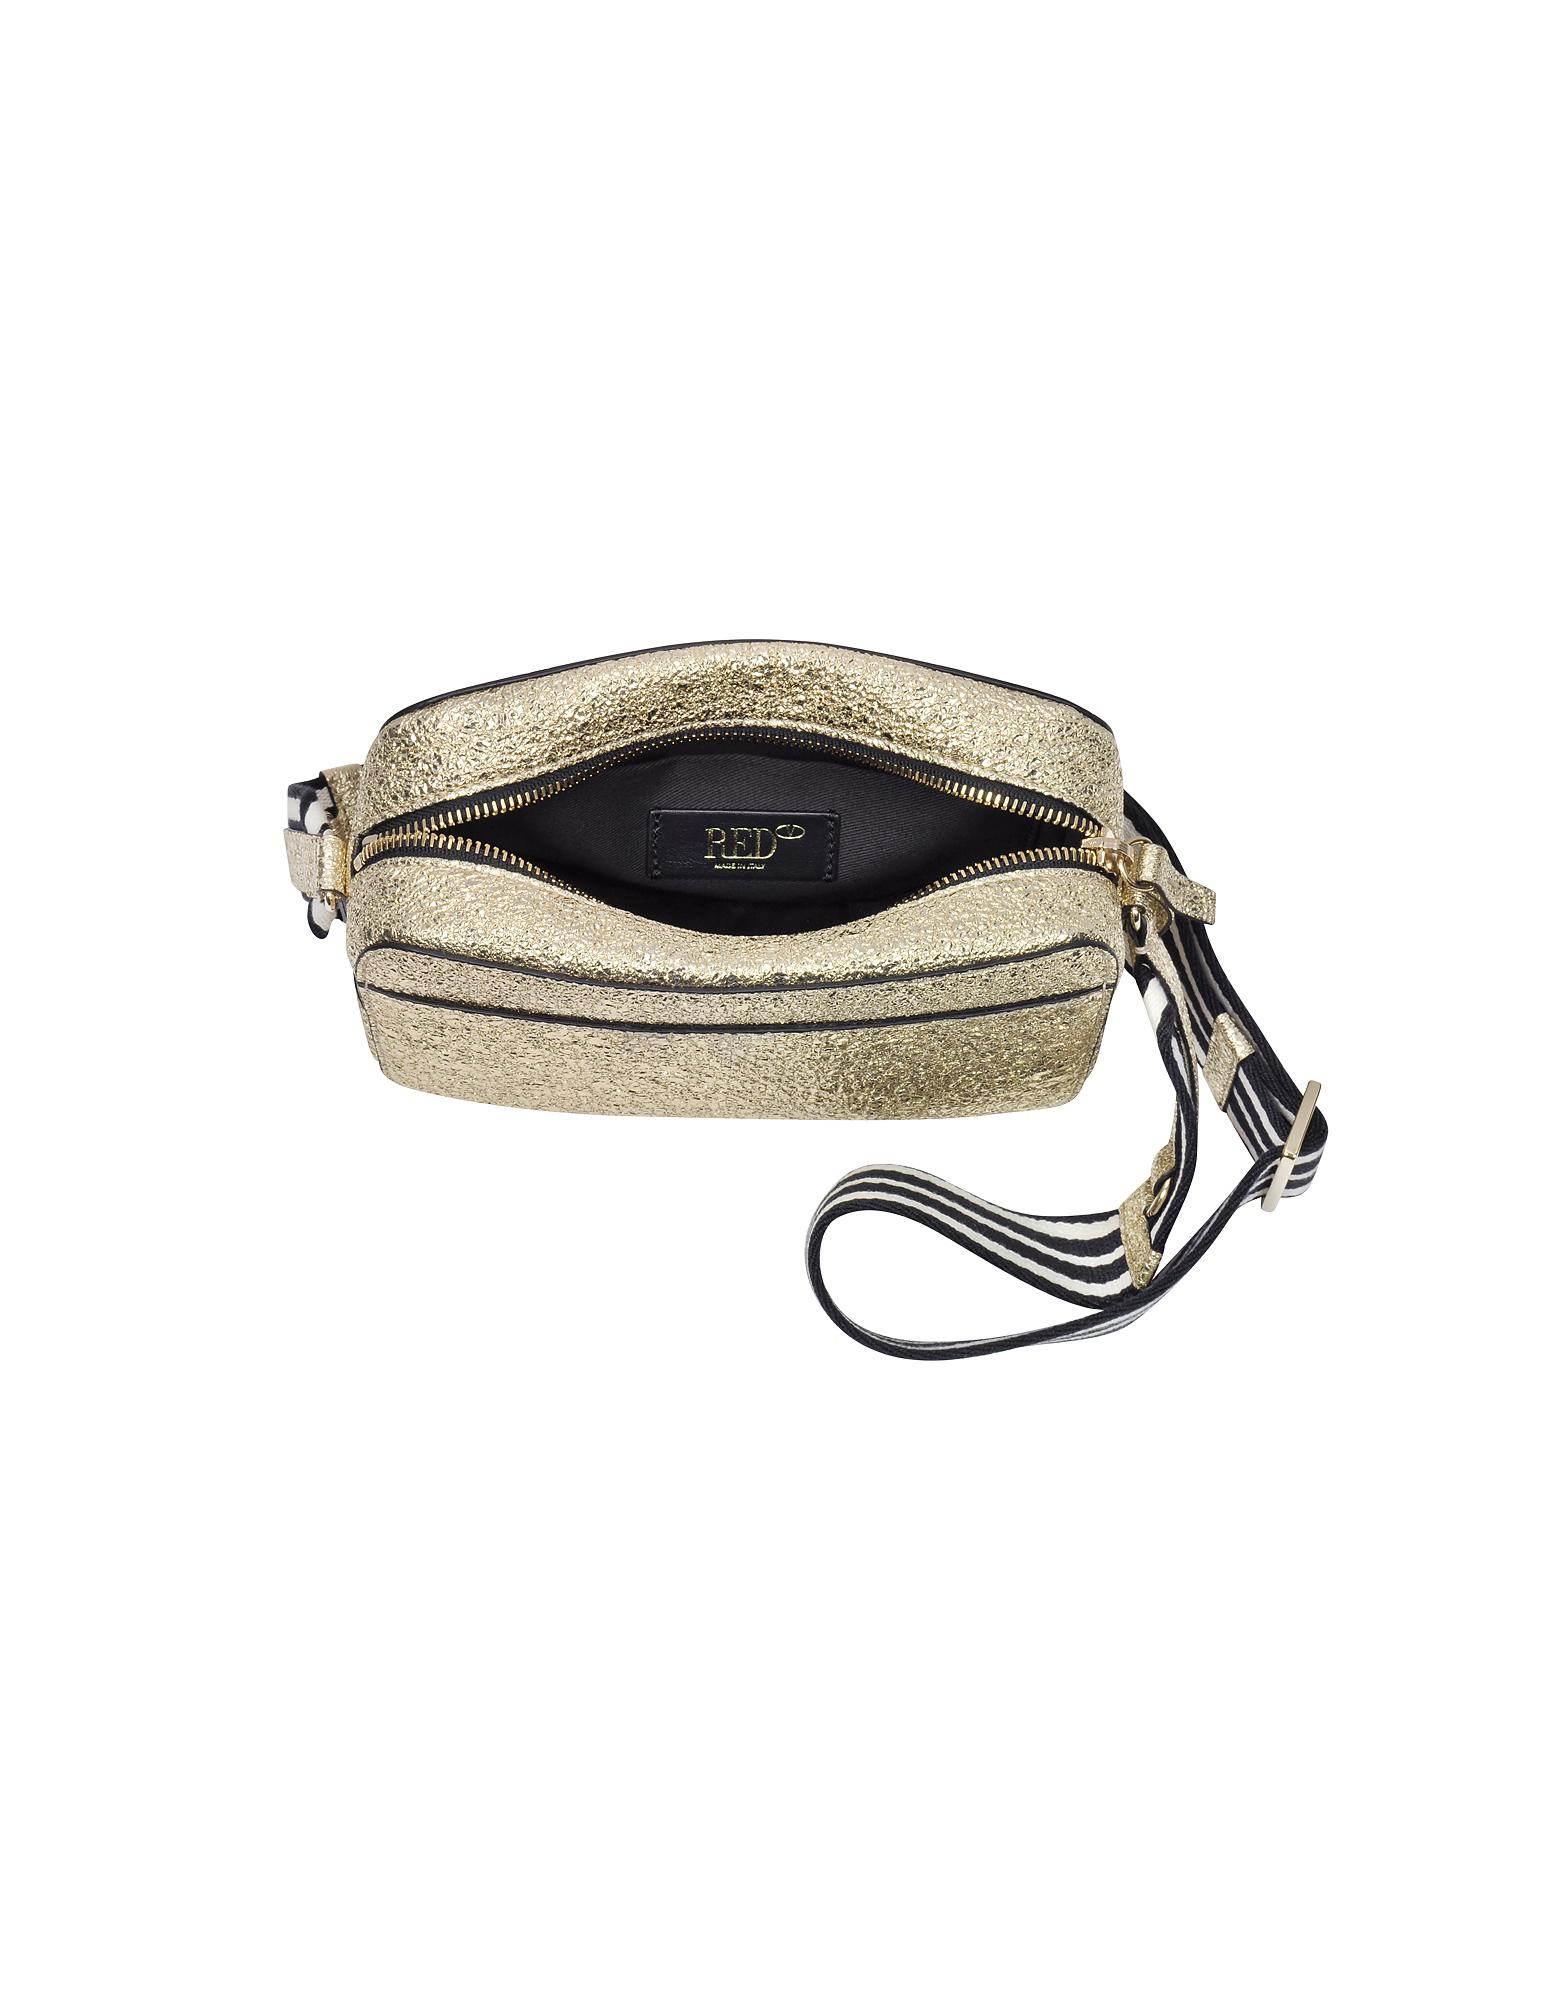 a052b58d0 RED Valentino Gold Leather Shoulder Bag in Metallic - Lyst